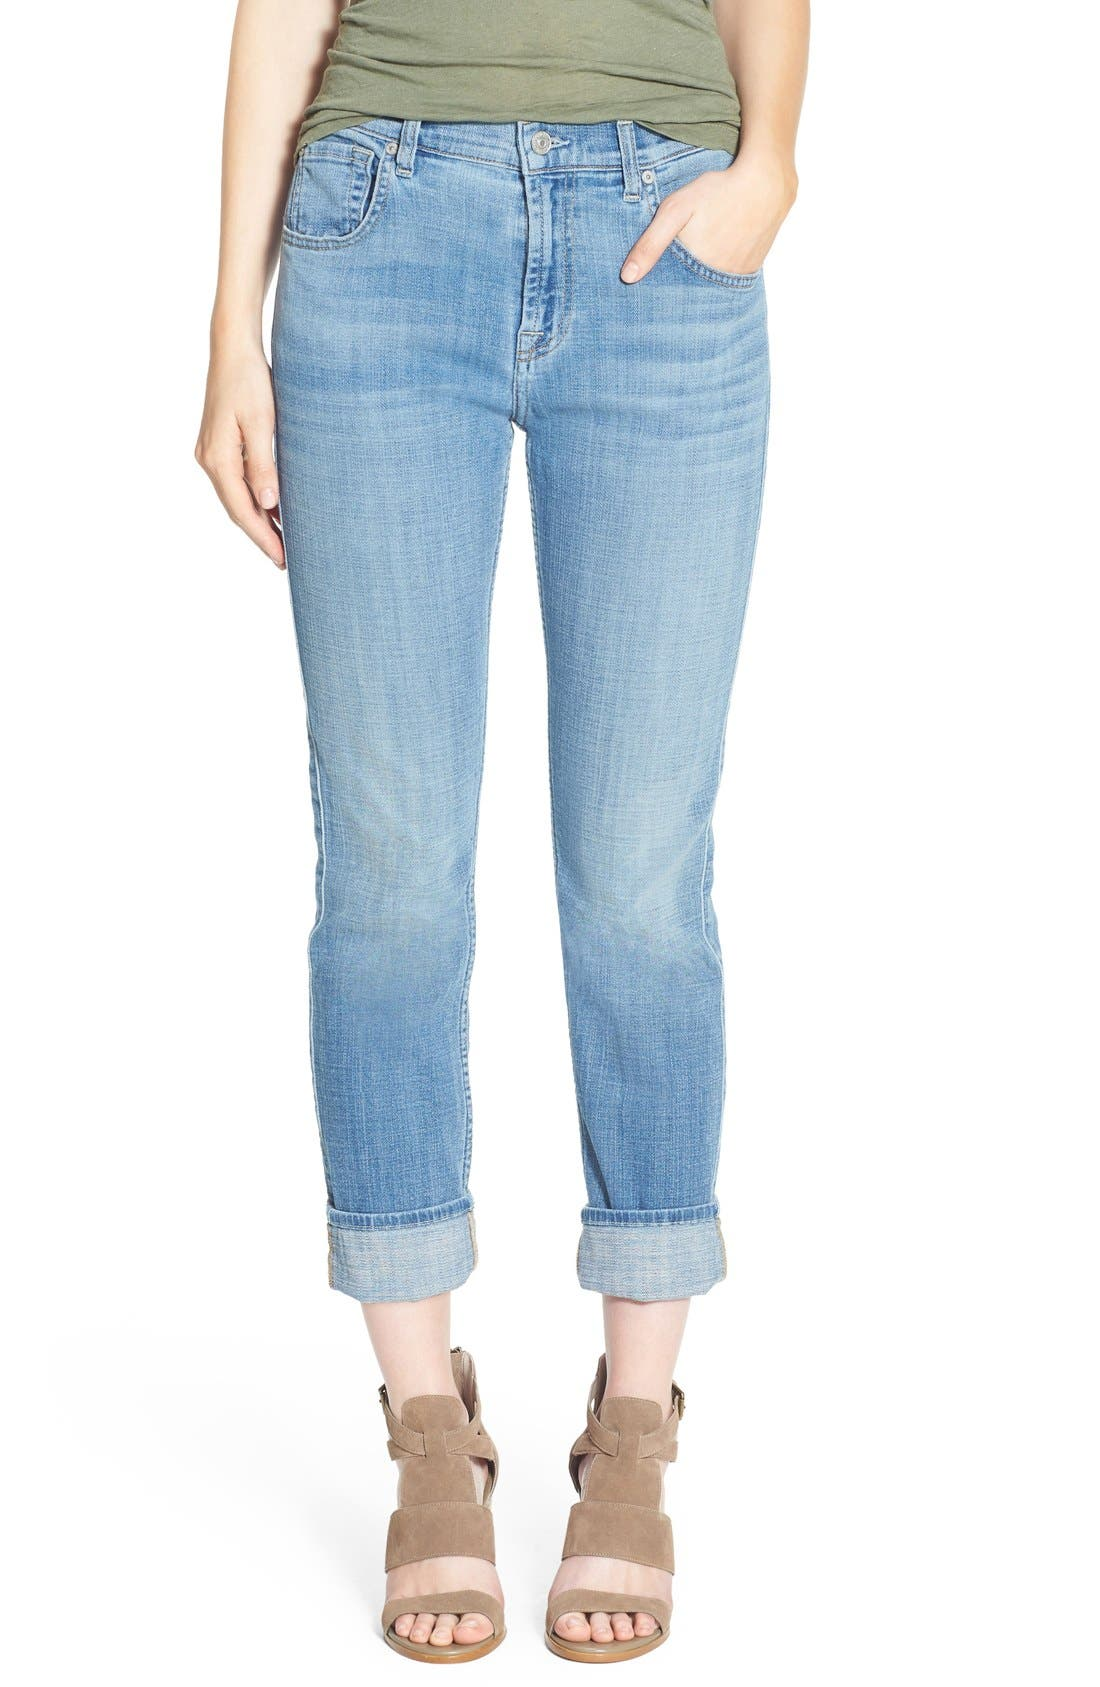 Alternate Image 1 Selected - 7 For All Mankind® 'Josefina' Relaxed Skinny Jeans (Medium Broken Twill)